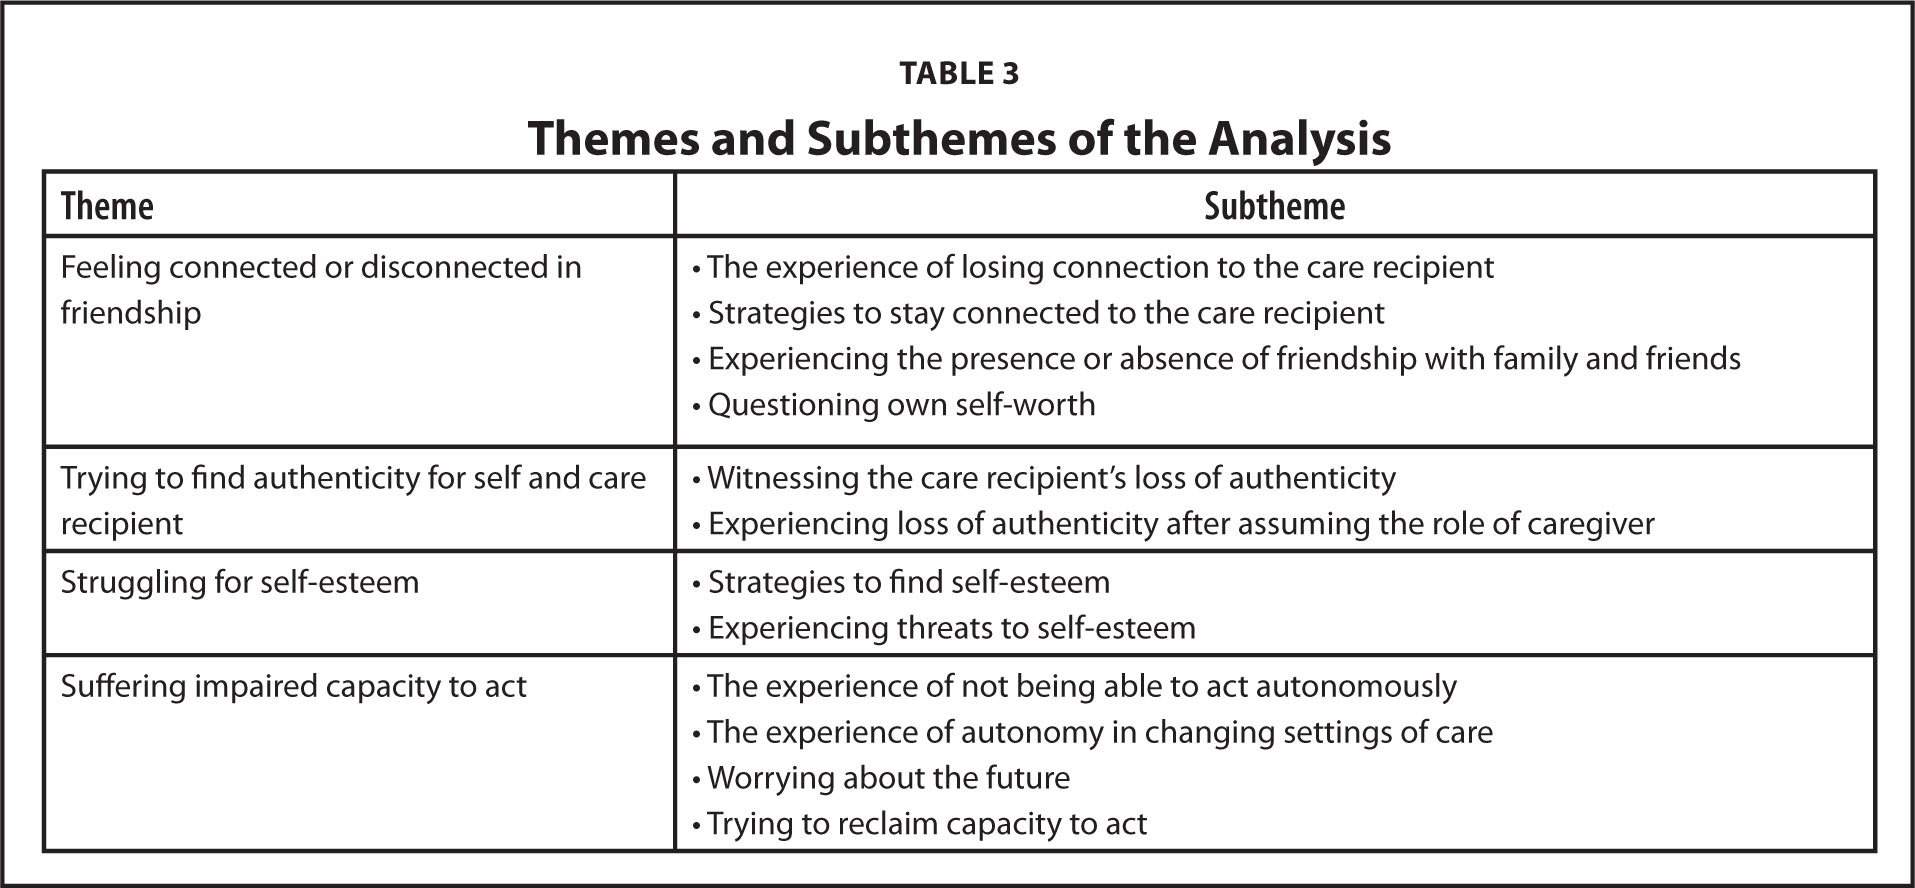 Themes and Subthemes of the Analysis